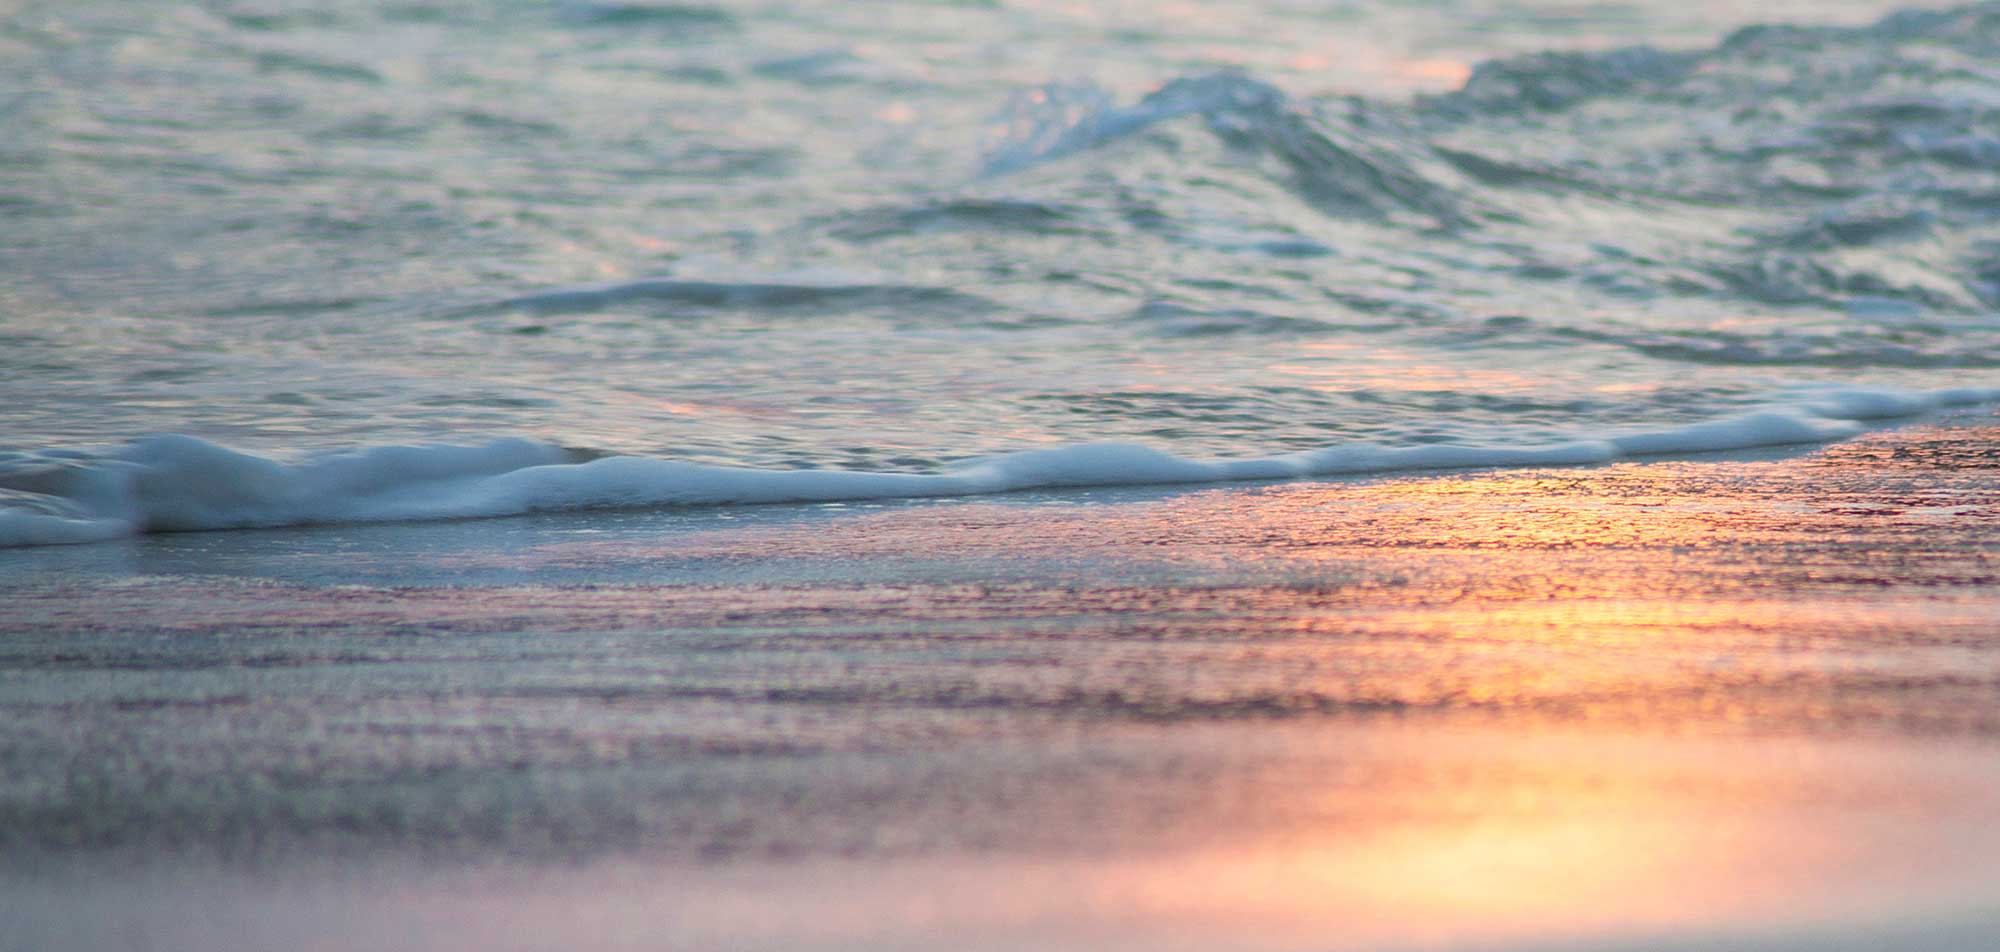 The sea at sunset image features on Mulberry house Gift Vouchers